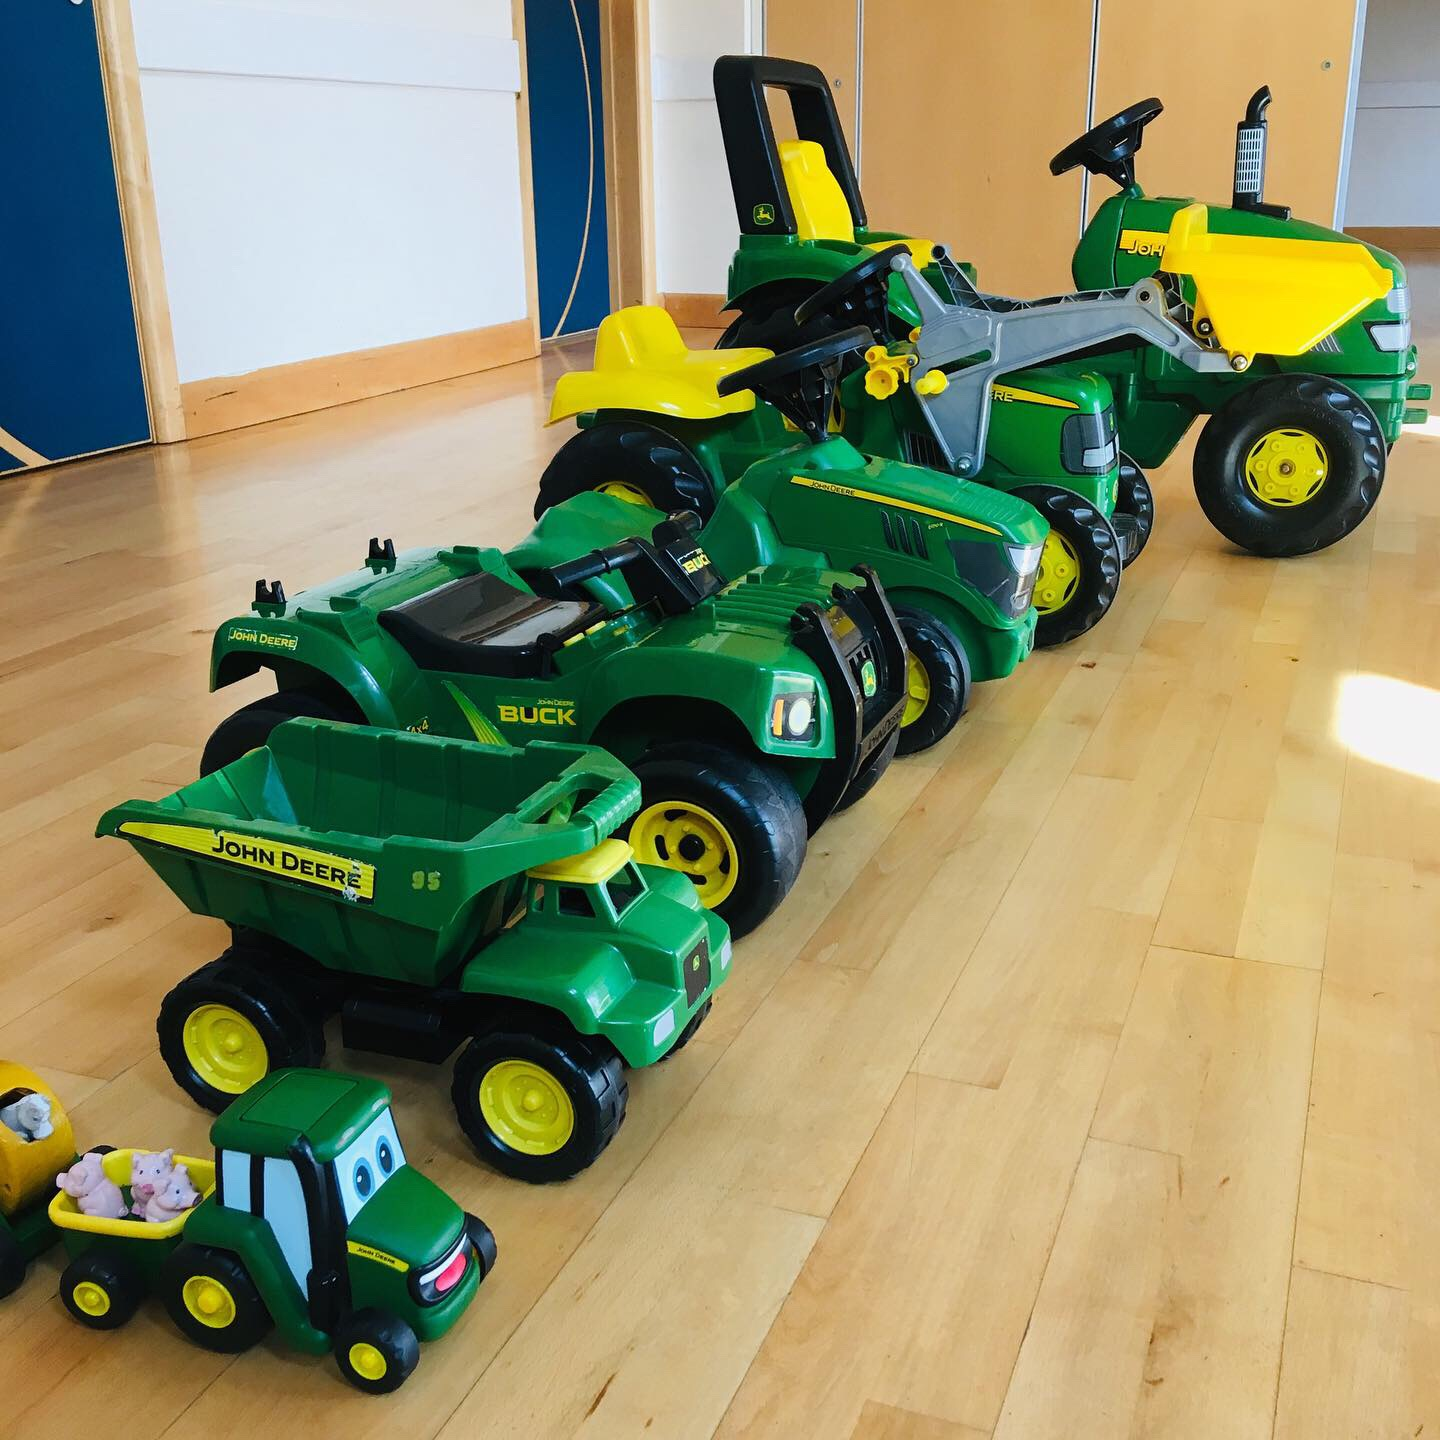 a collection of tractors and farm vehicles, all in green